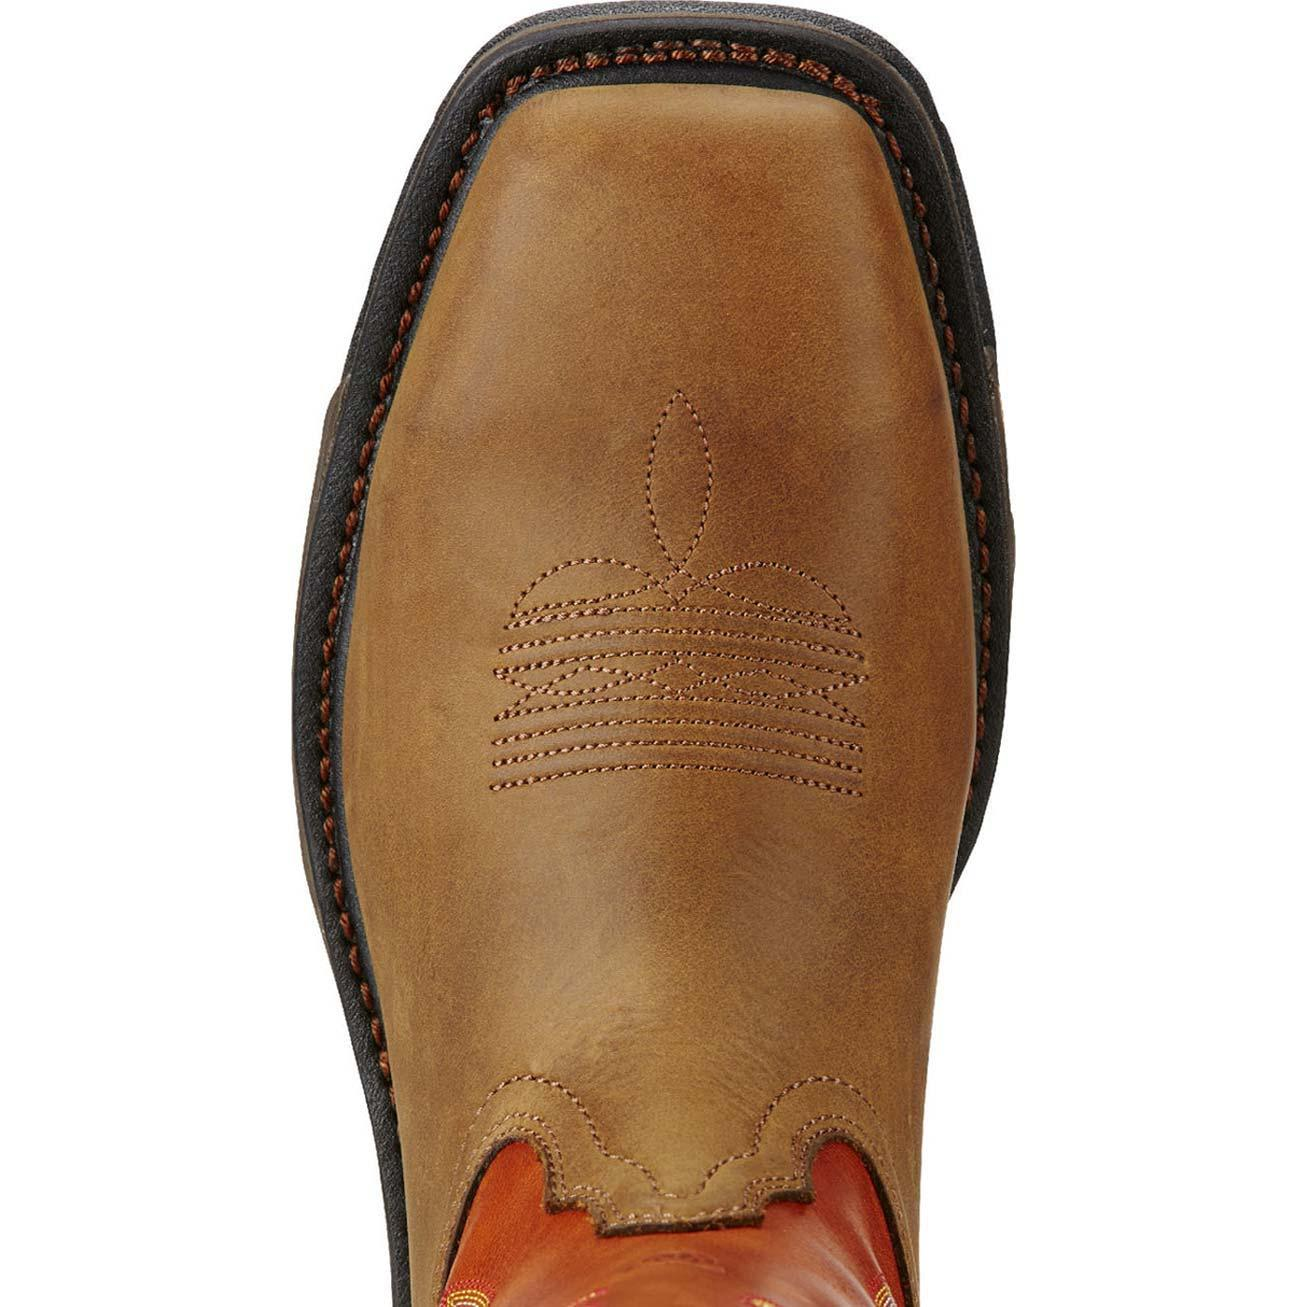 c74242e00b1 Ariat Workhog Composite Toe CSA-Approved Puncture-Resistant Western Work  Boot